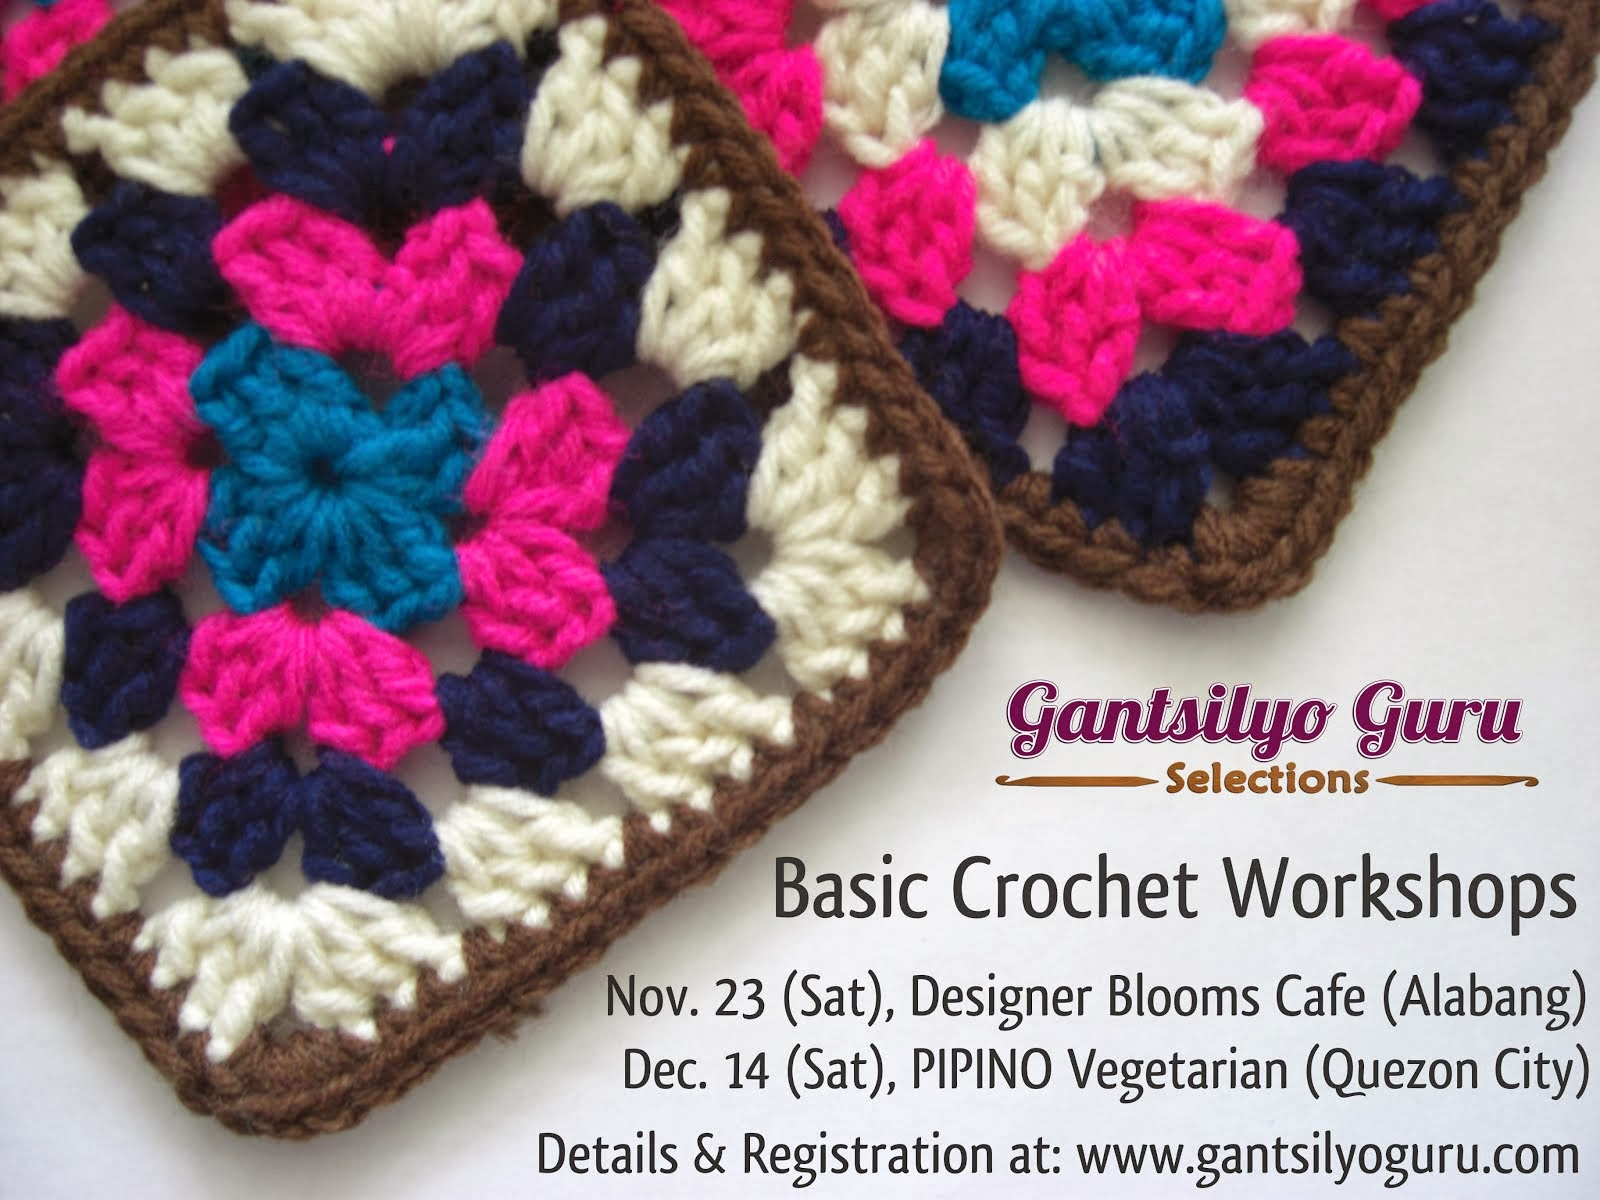 Learn To Crochet in QC or Alabang